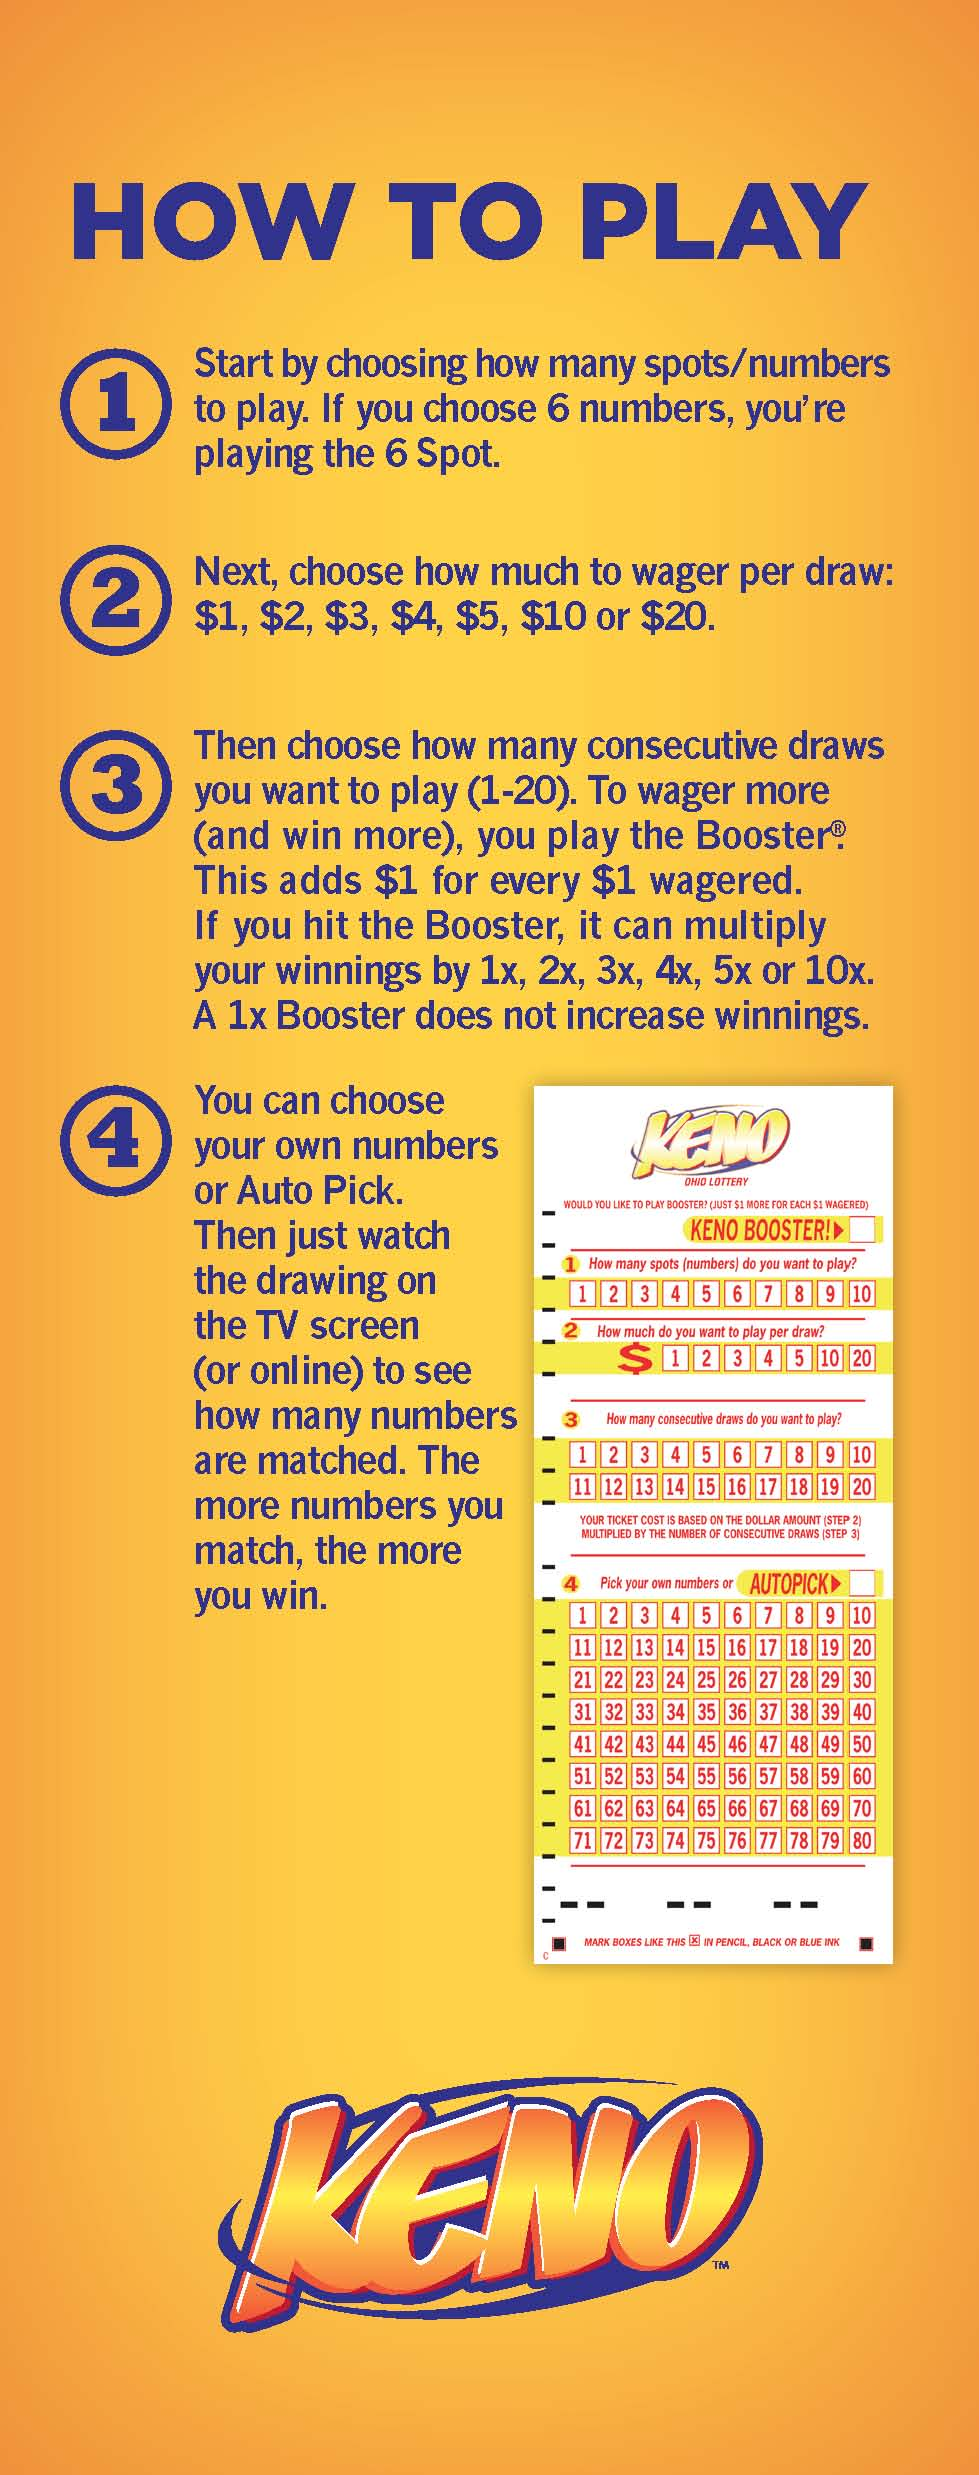 Best keno numbers to play in ohio